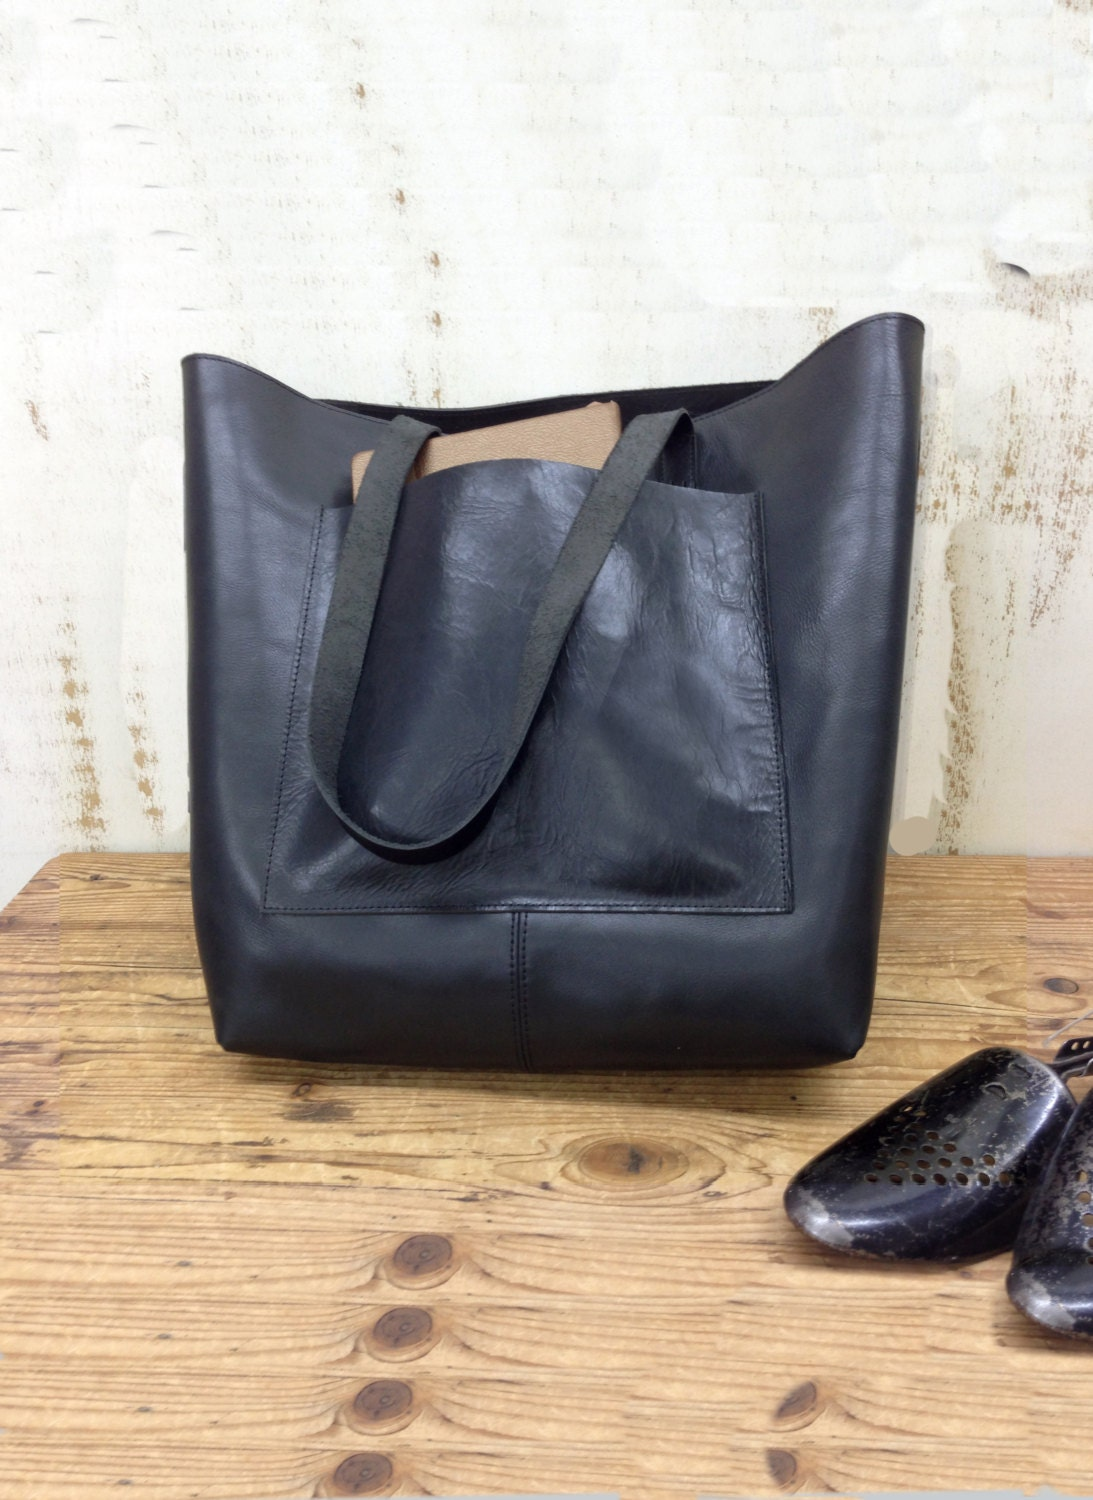 prada womens purses - Popular items for tote with pockets on Etsy